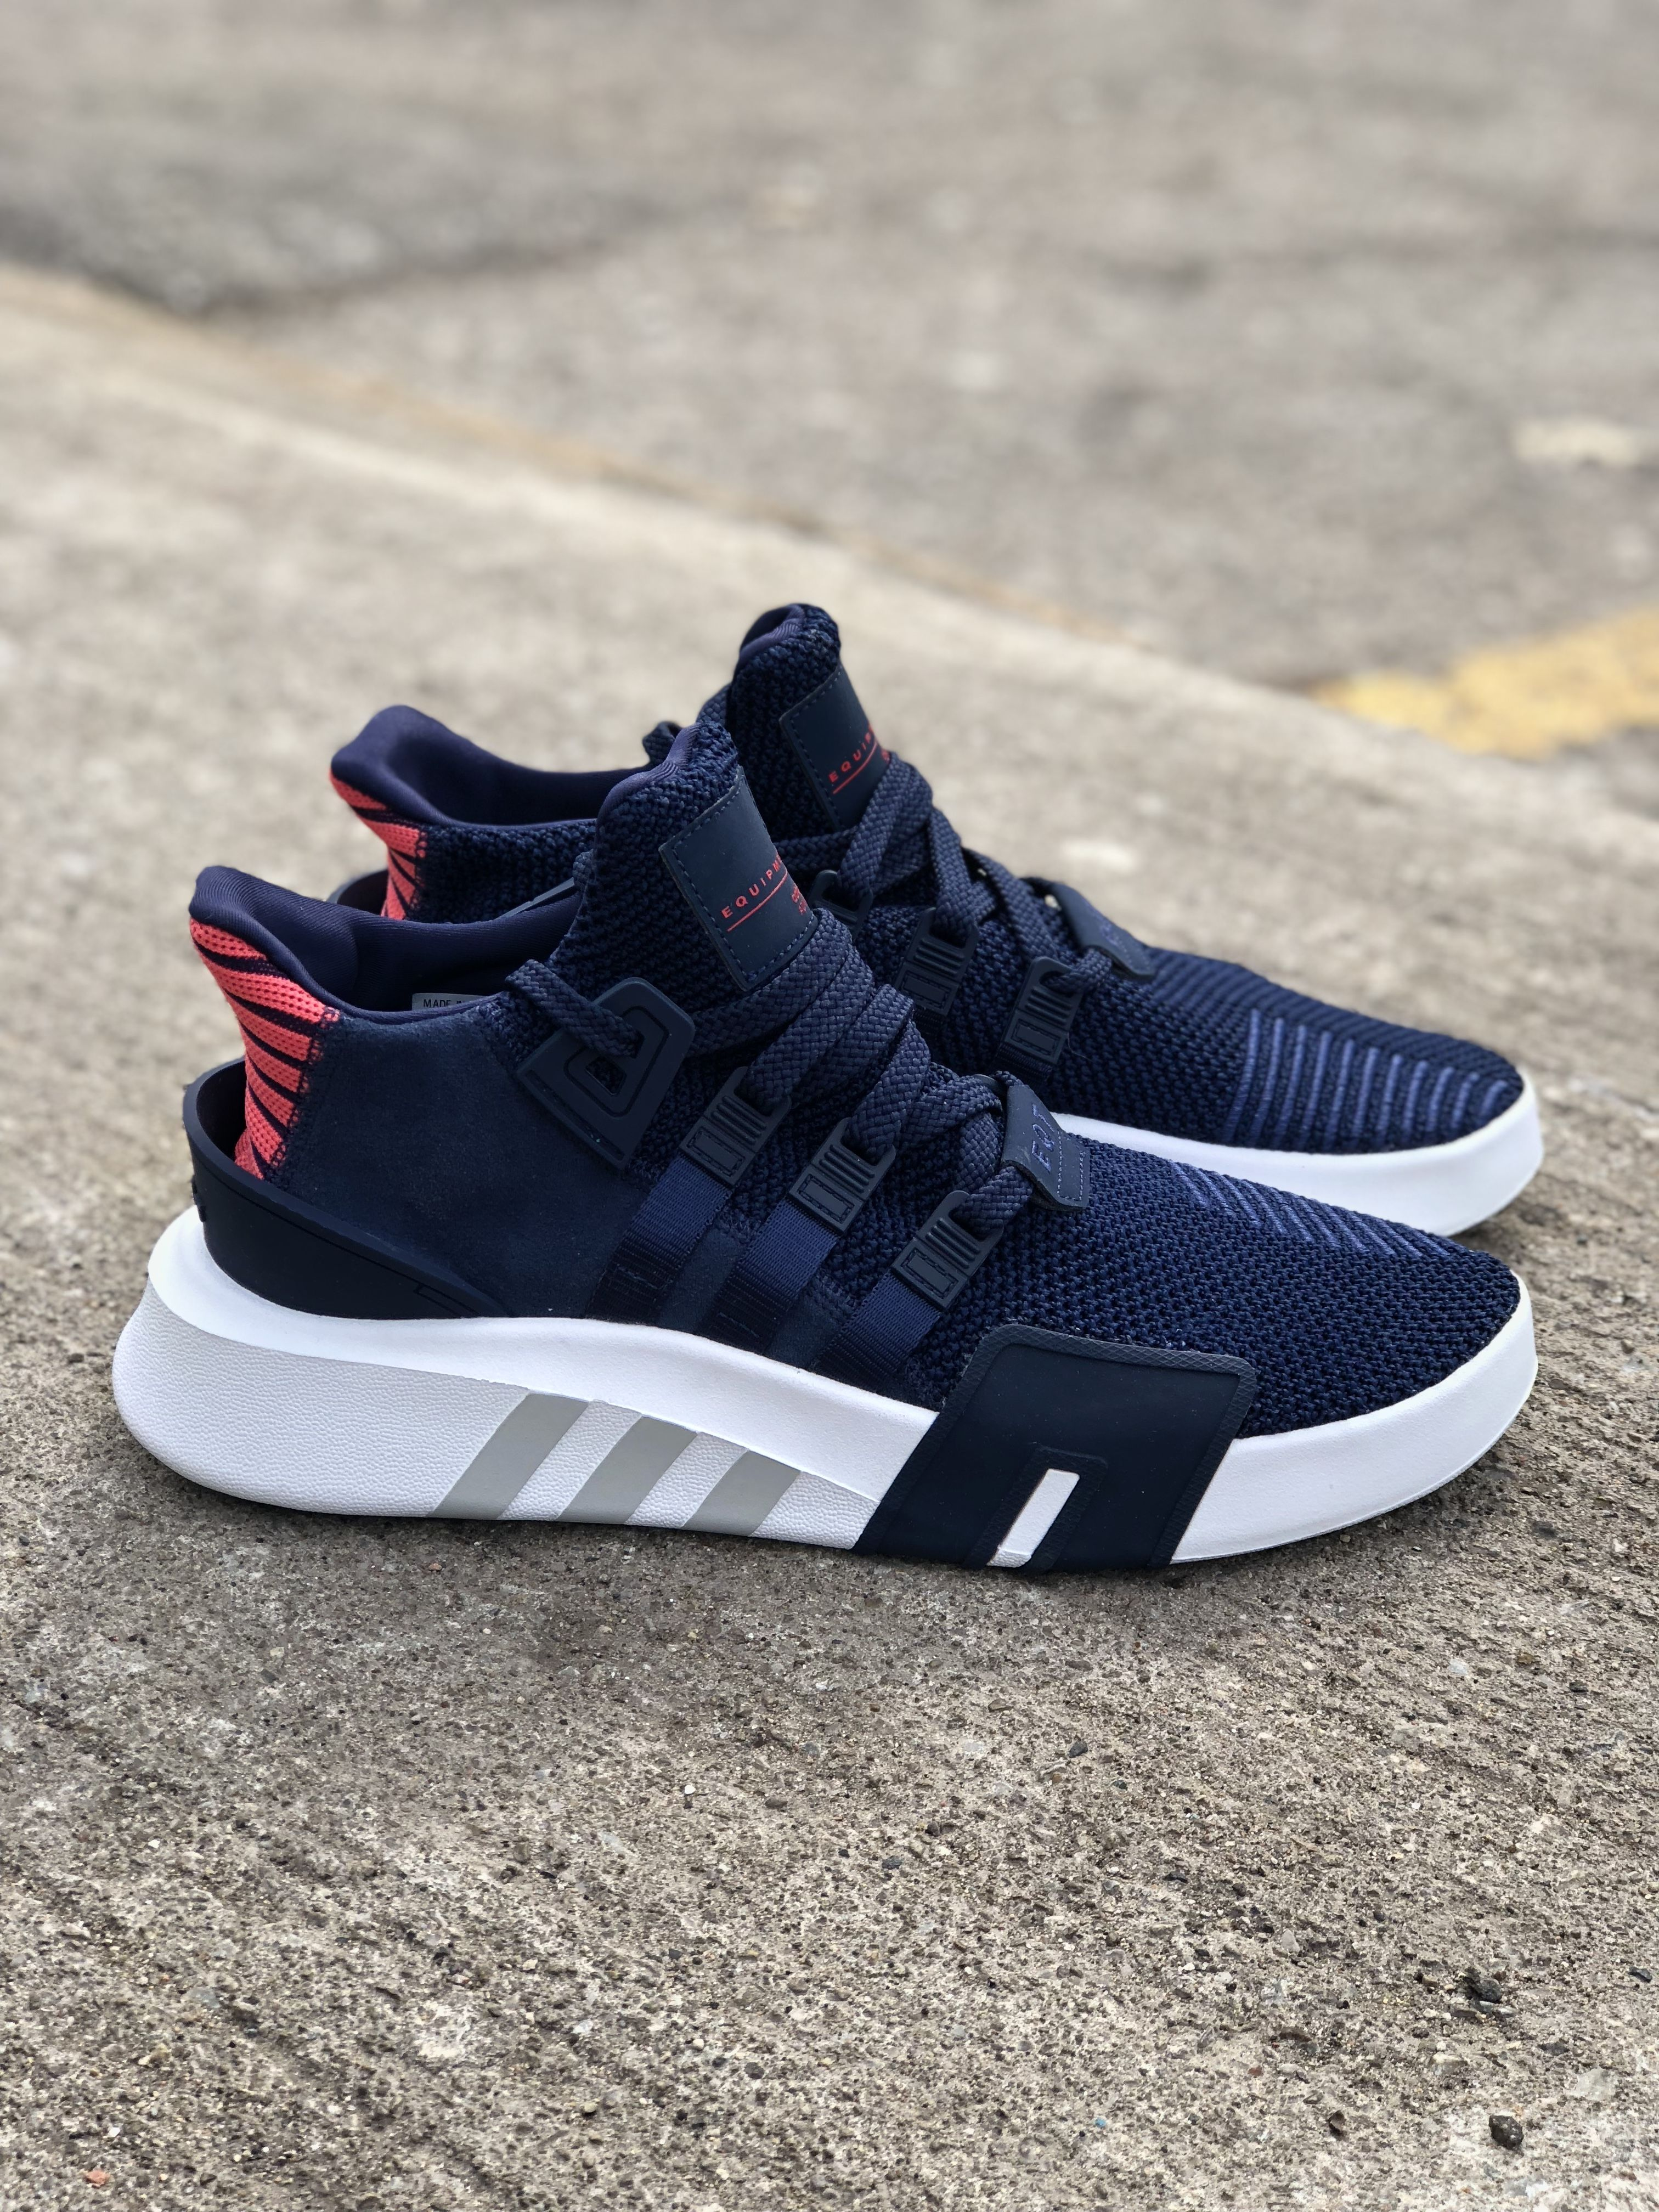 16f529a8863e Spring 2018 Collection Adidas Eqt Bask ADV